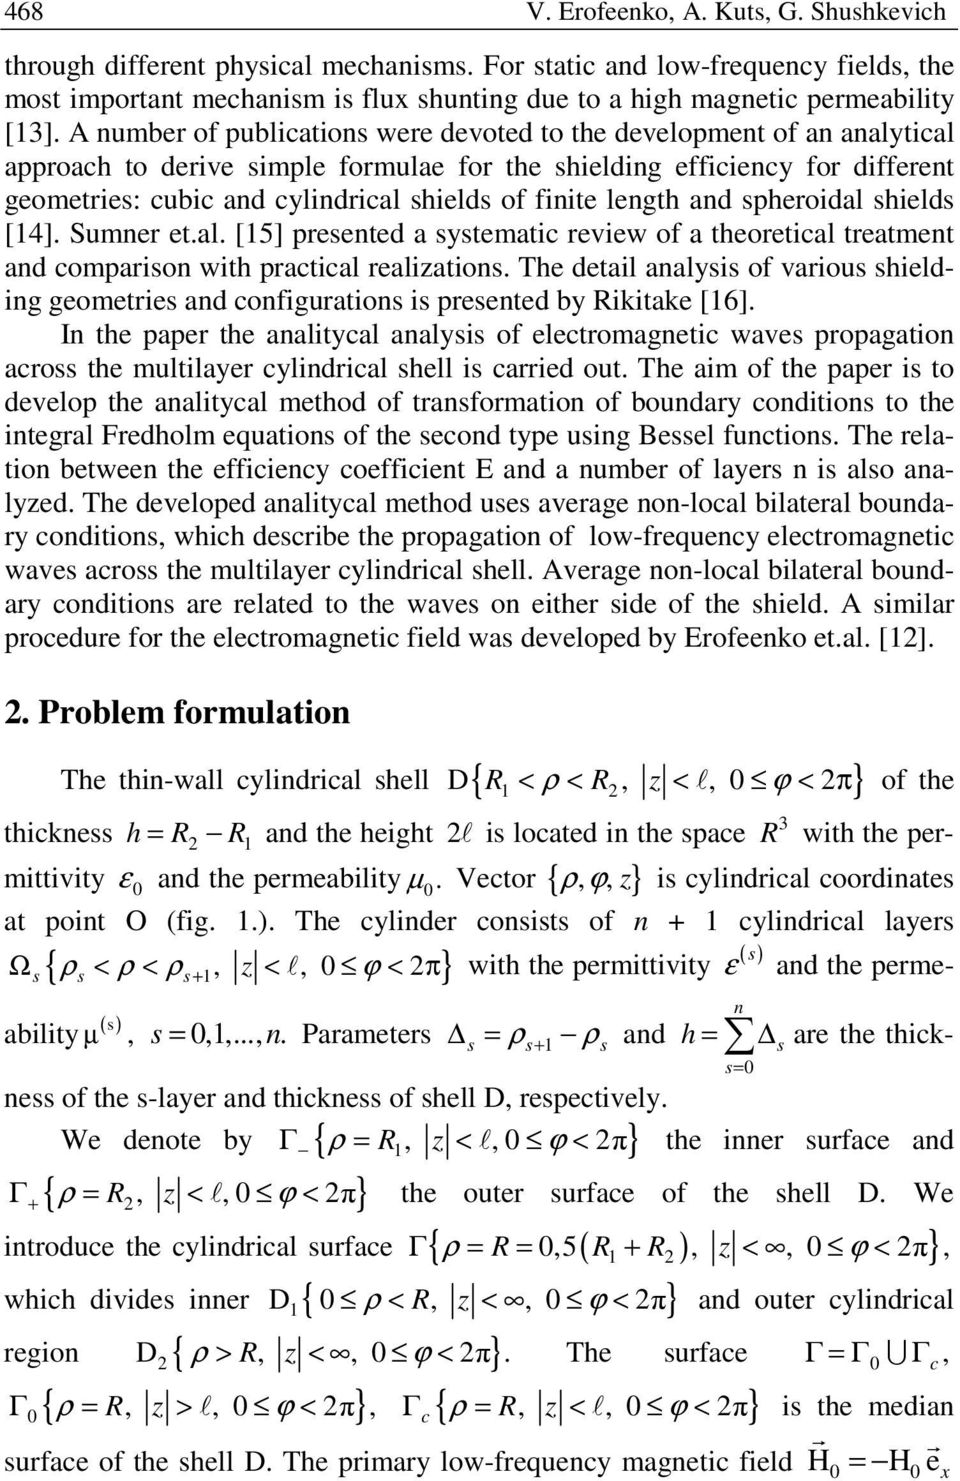 A number of publications were devoted to the development of an analytical approach to derive simple formulae for the shielding efficiency for different geometries: cubic and cylindrical shields of